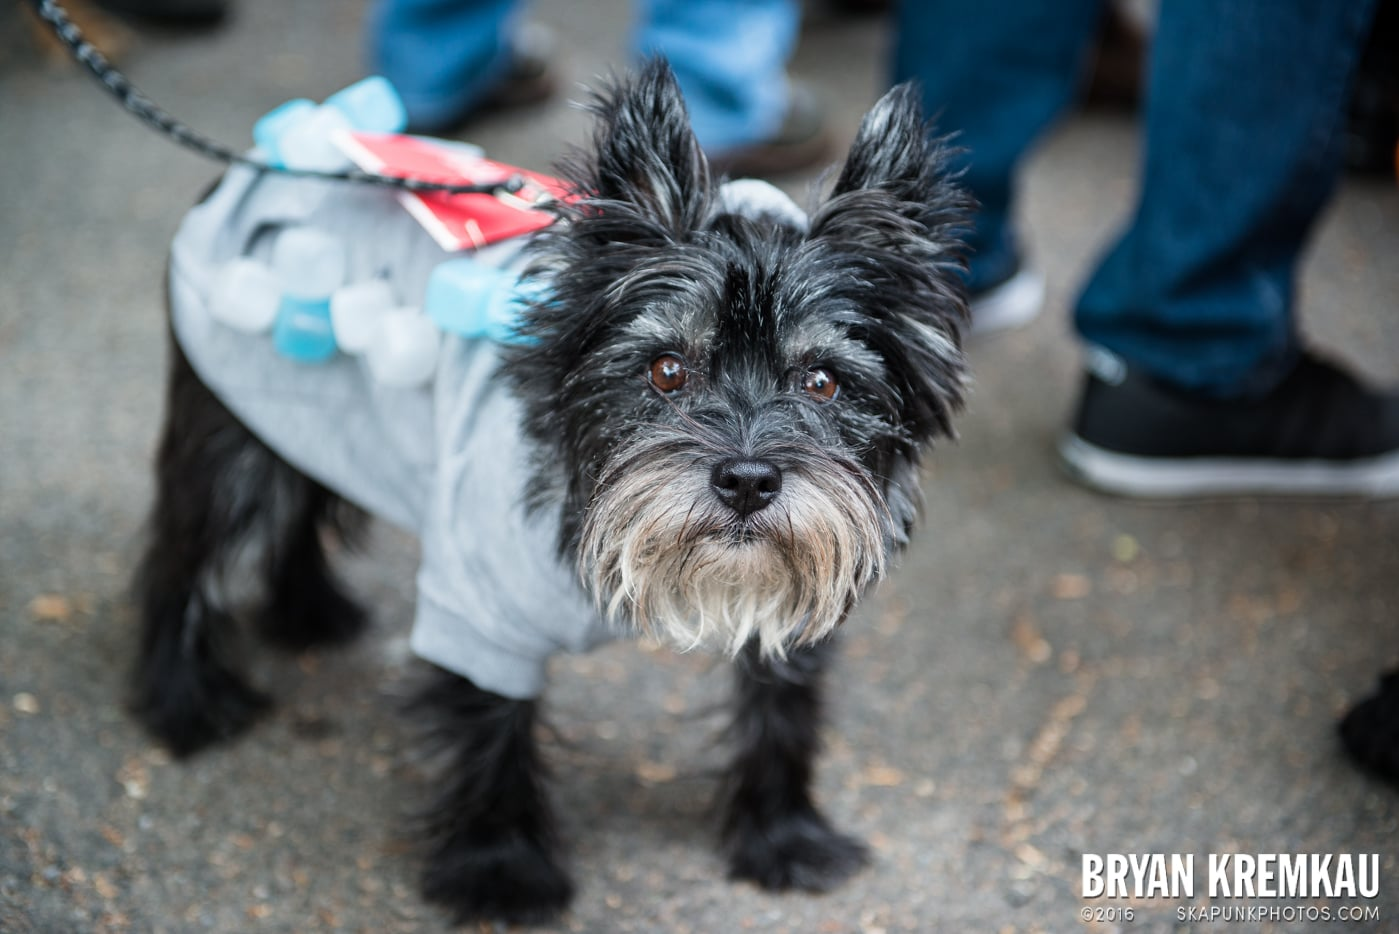 Tompkins Square Halloween Dog Parade 2015 @ Tompkins Square Park, NYC – 10.24.15 (38)